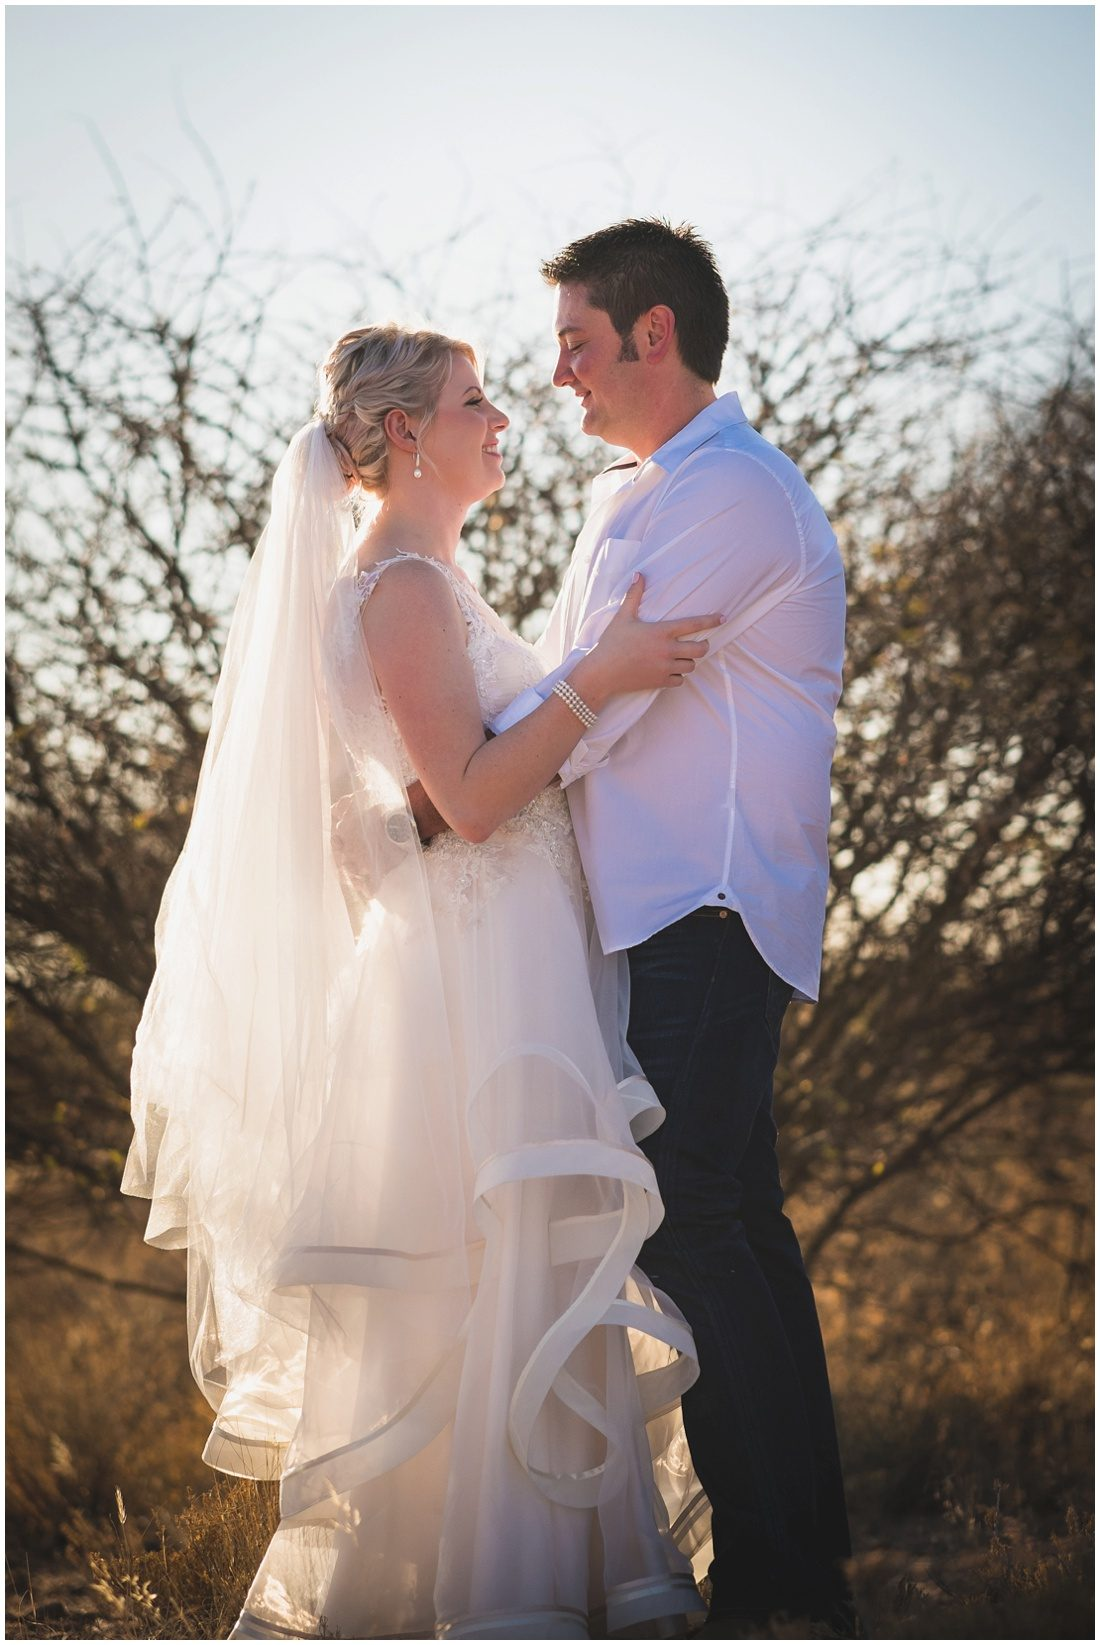 namibian wedding marienthal - rory & christa bride & groom marienthal-16